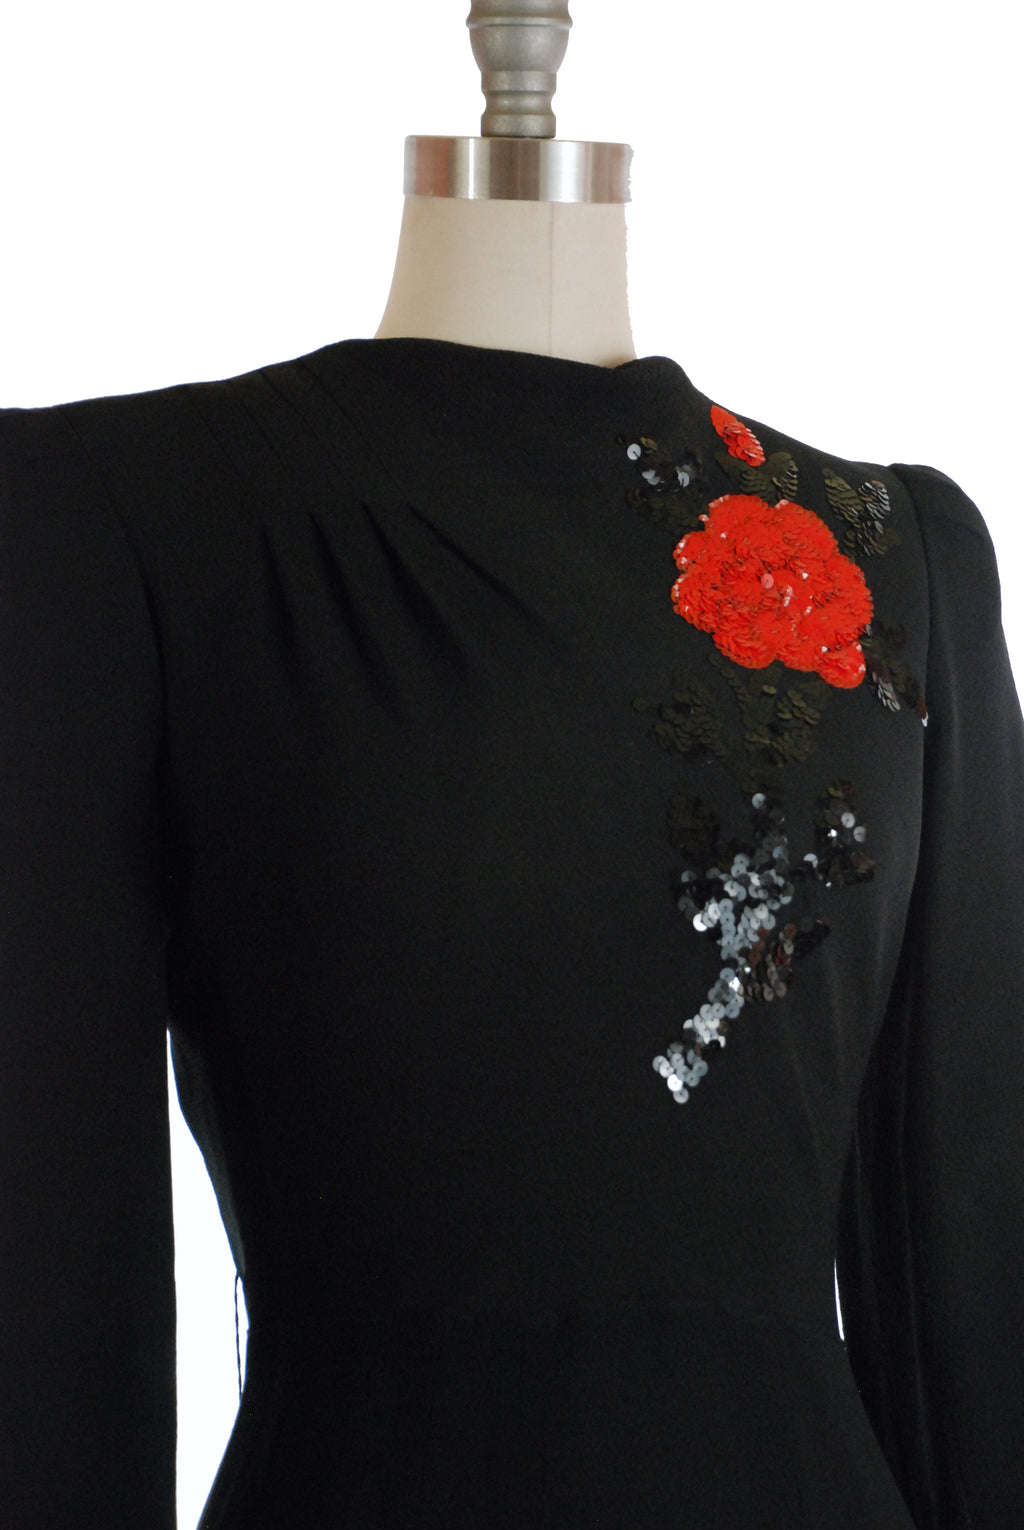 Stunning Late 1930s/Early 1940s Rayon Crepe Dress with Dramatic Sequined Rose